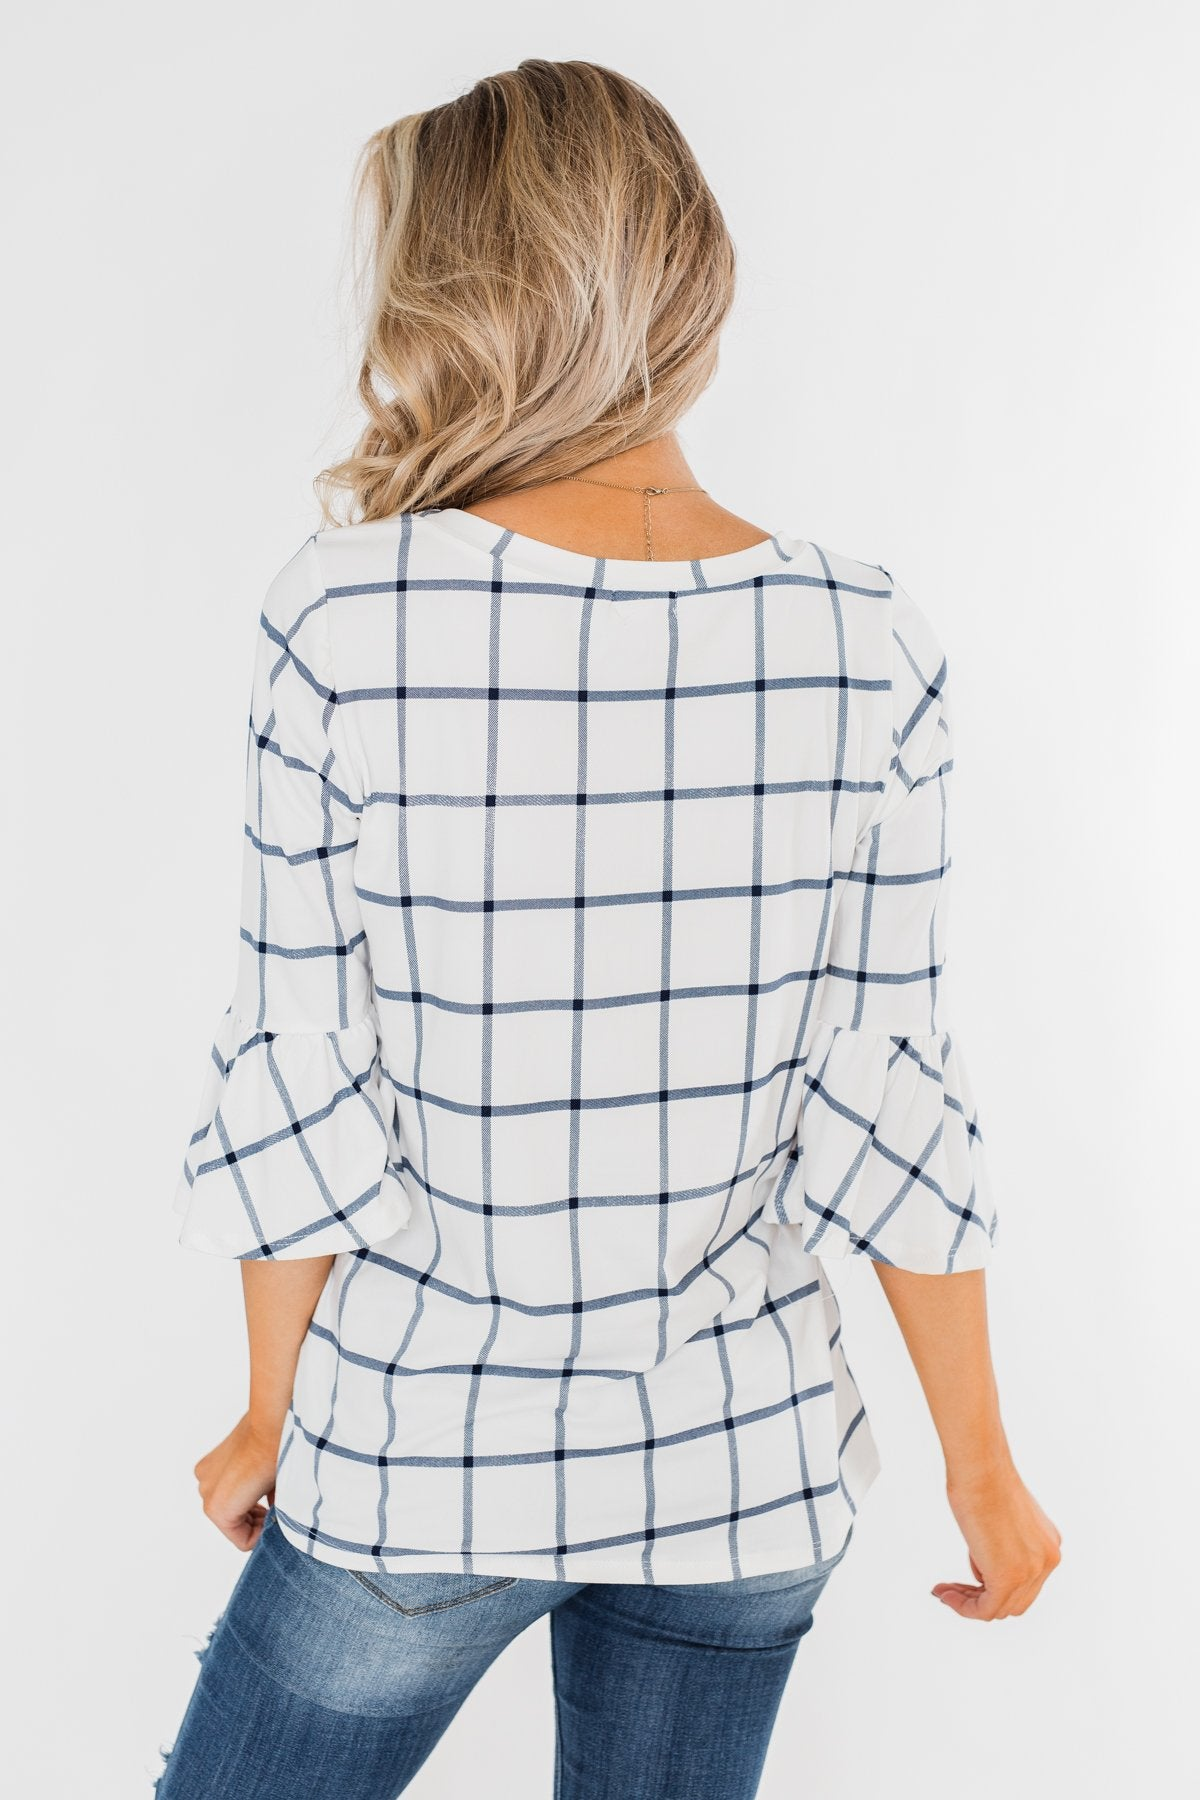 Everything I Need Plaid Top- Ivory & Blue